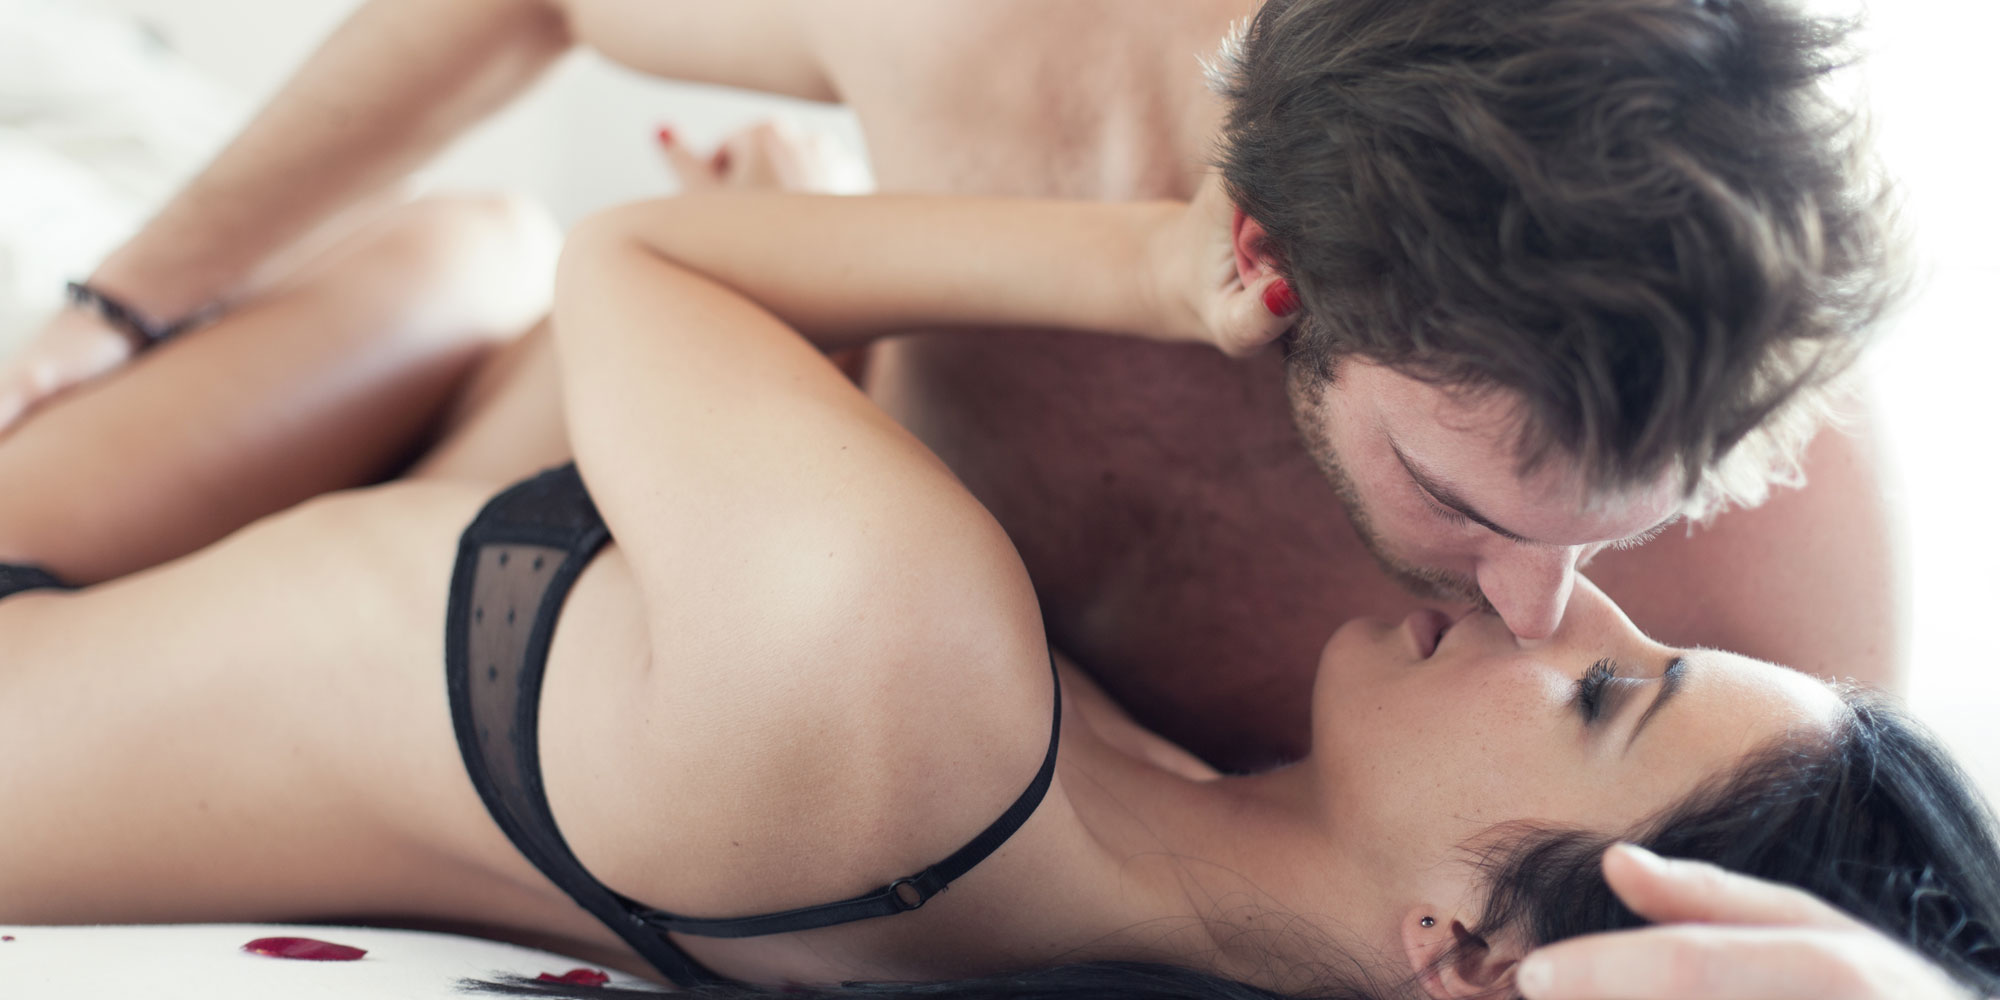 10 Sex Tips for the Best Sex Ever - How To Be Good in Bed